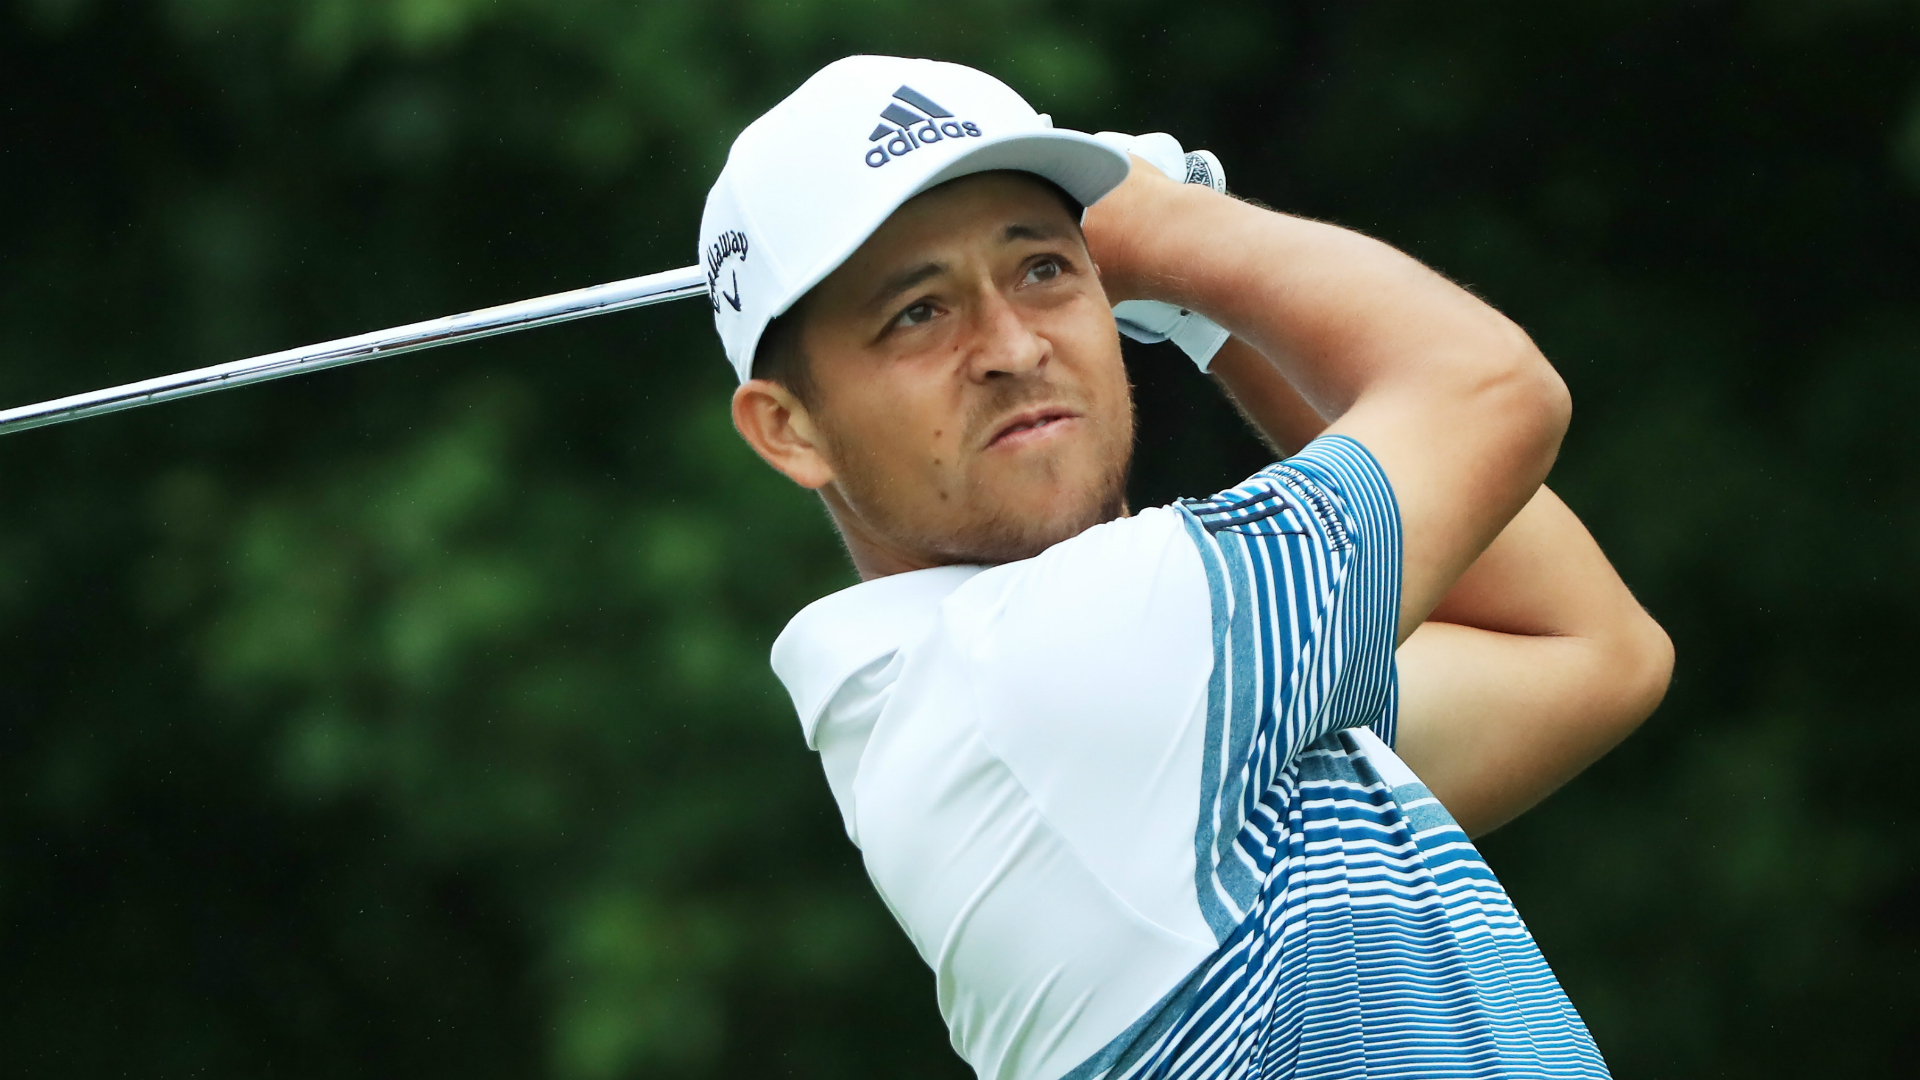 Tour Championship 2019: FedEx Cup hopeful Xander Schauffele makes hole-in-one